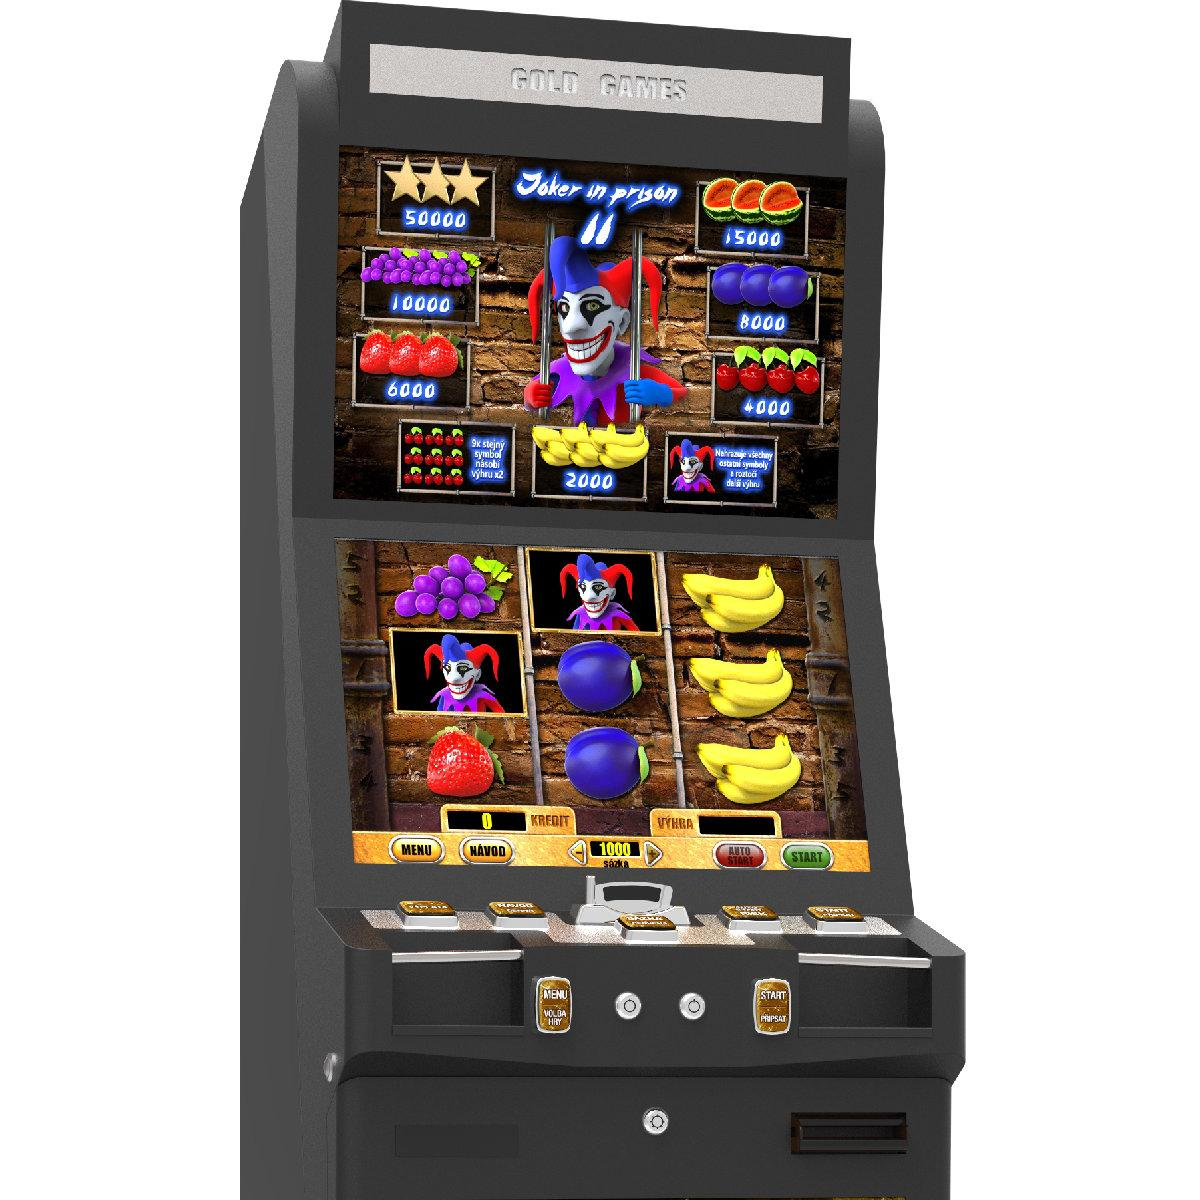 Gold games plus